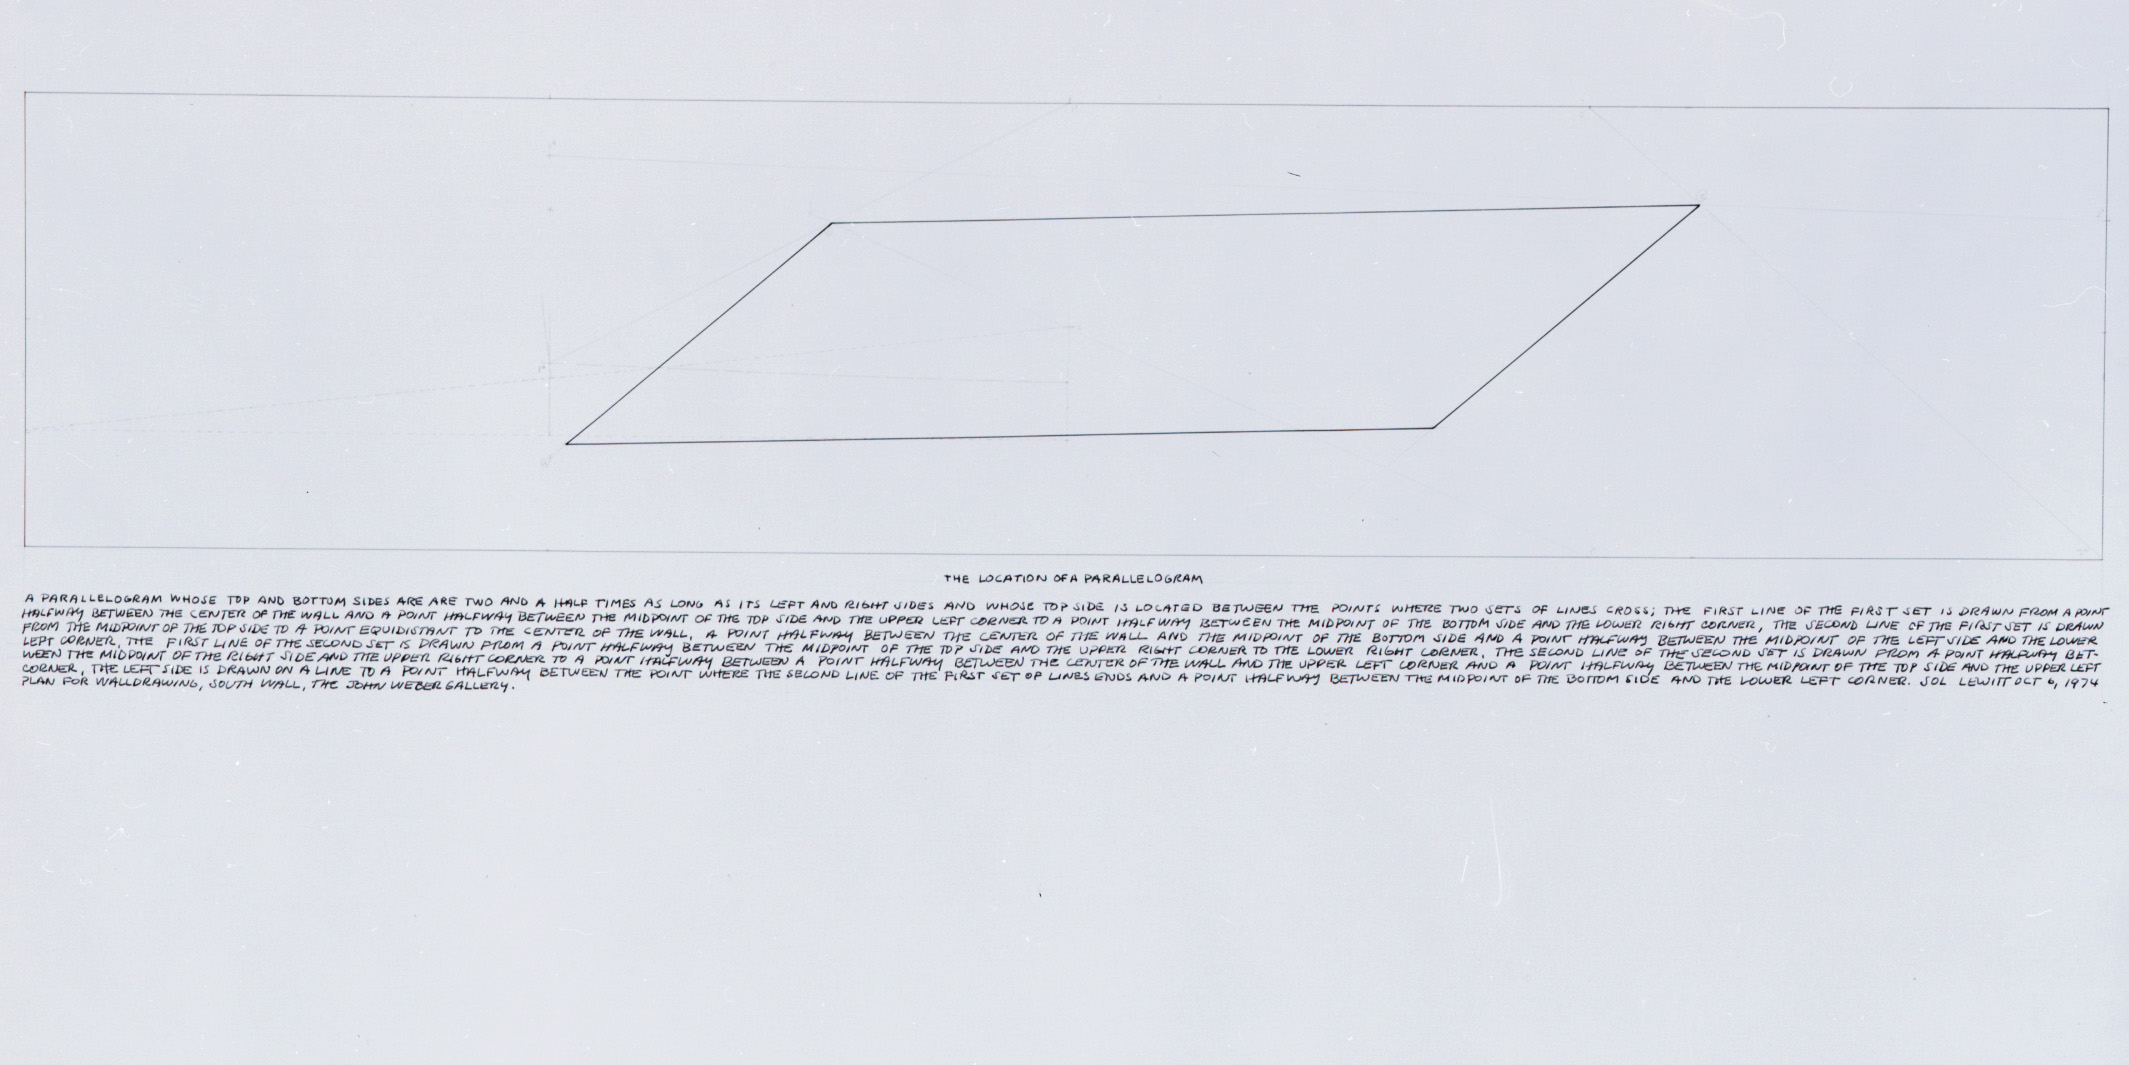 Sol Lewitt: Works of the 60s and 70s